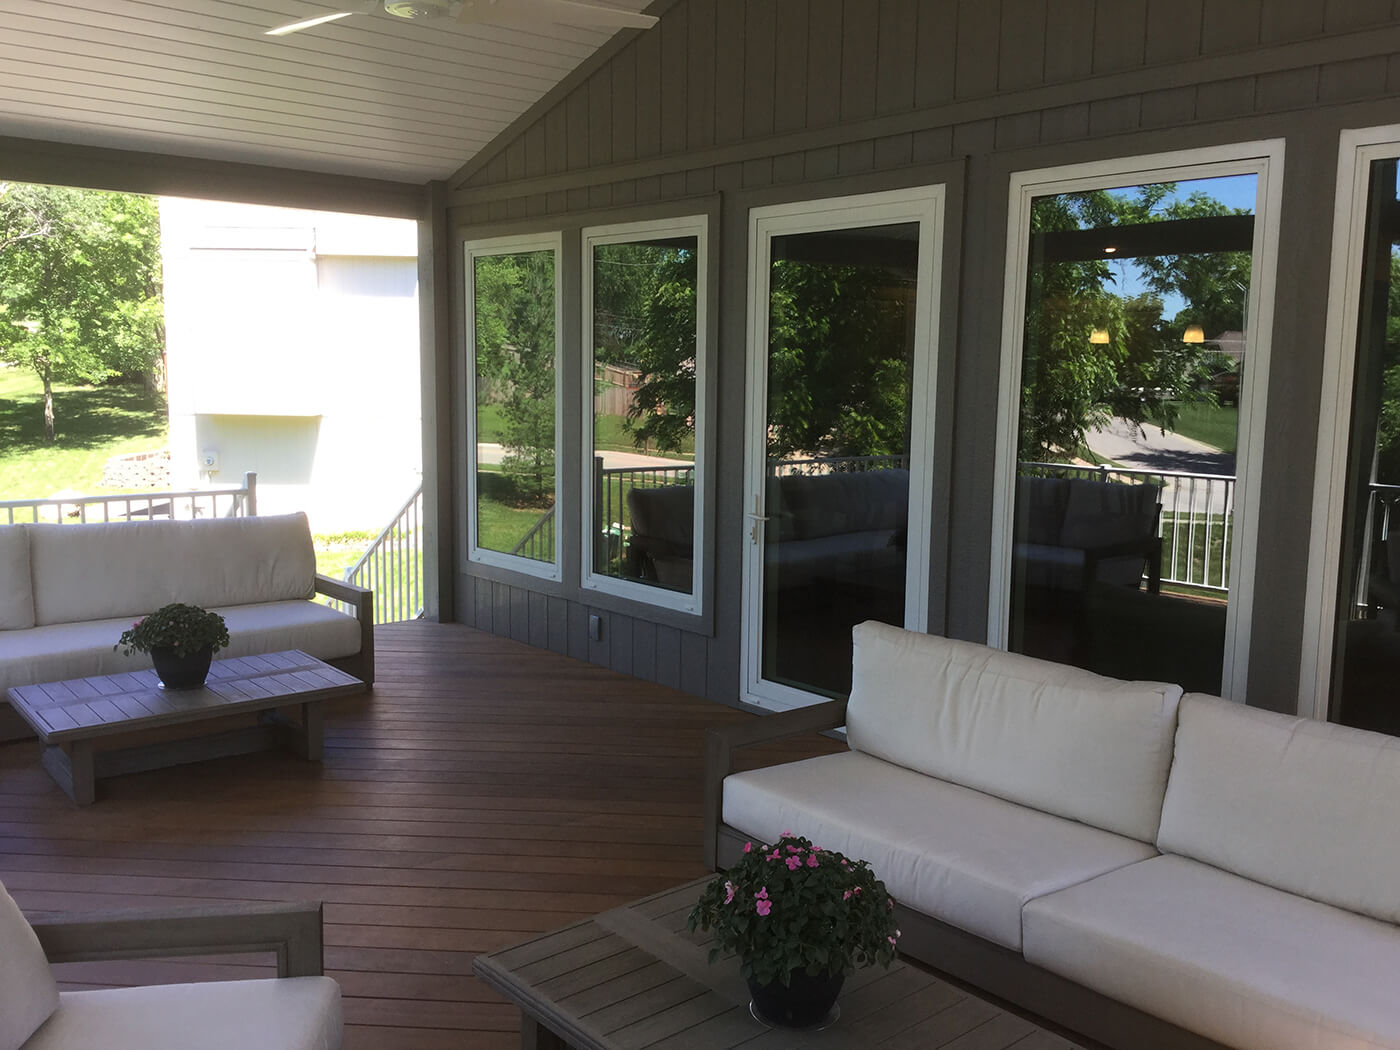 Seating area on porch